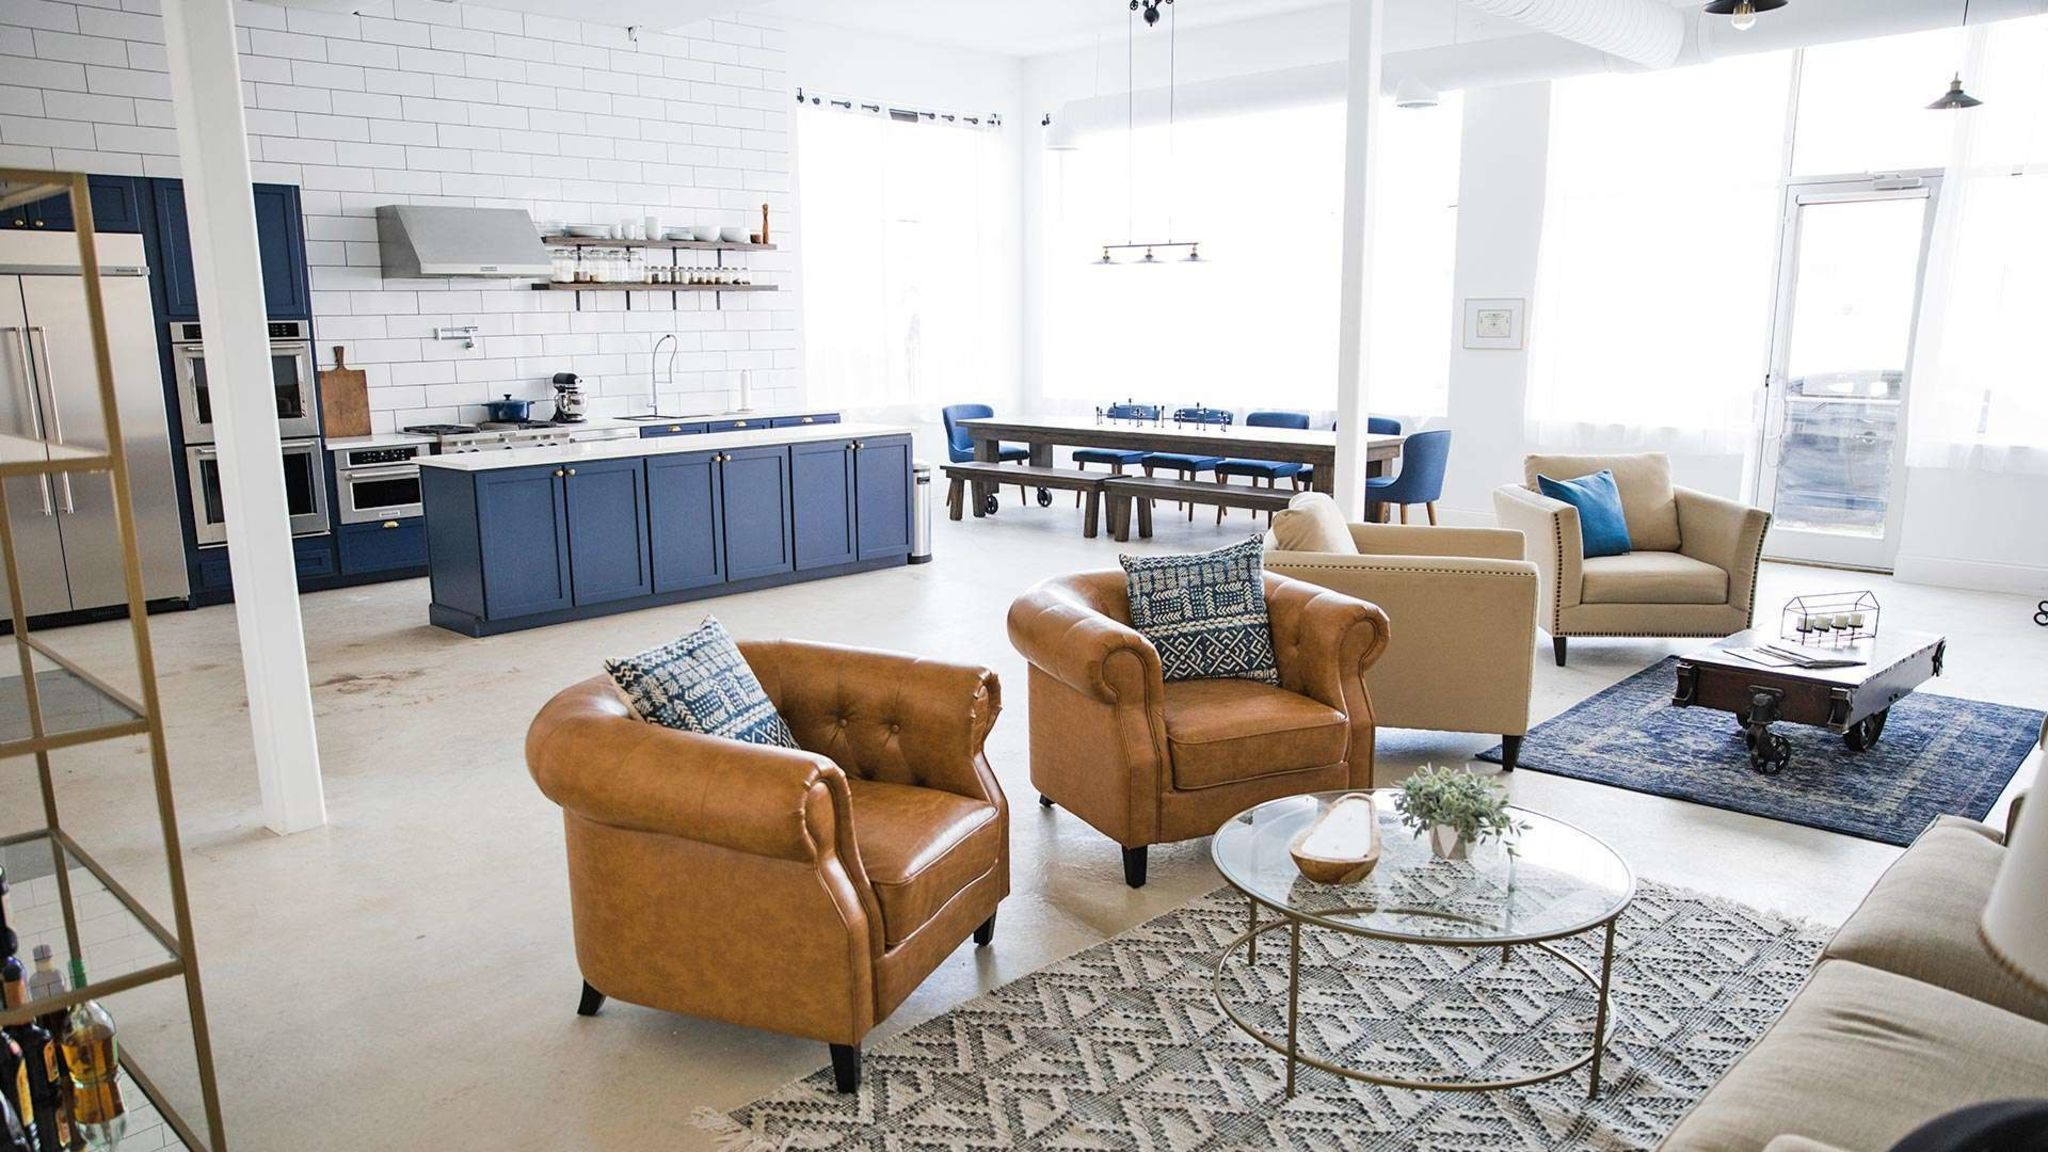 Industrial Farmhouse Entertaining Space Or Photo Shoot Space Chicago Il Production Peerspace